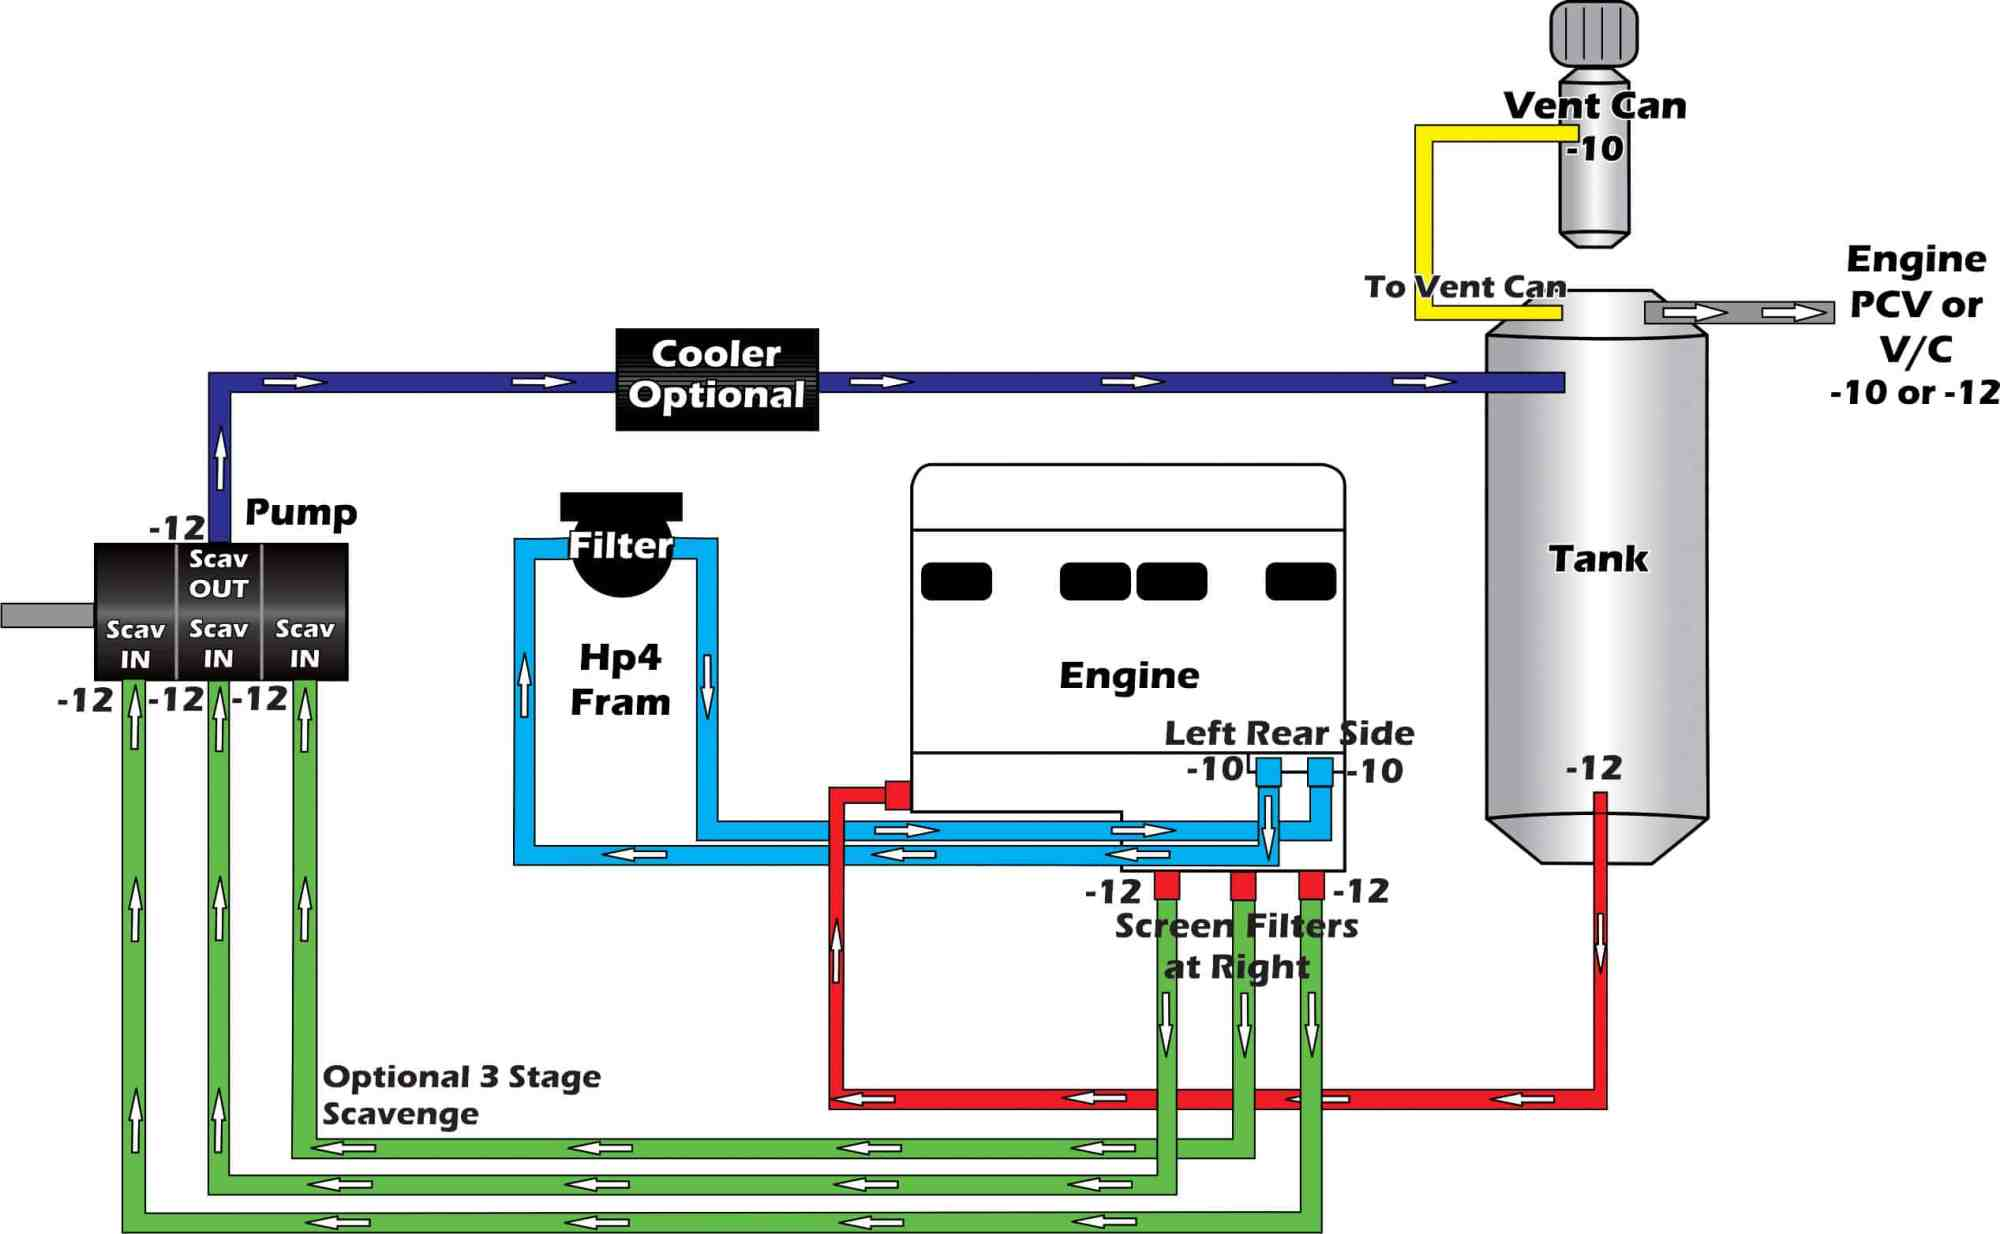 hight resolution of ford 4 6 engine oil system diagram best wiring library1005 stock internal pressure are plumbing schematic